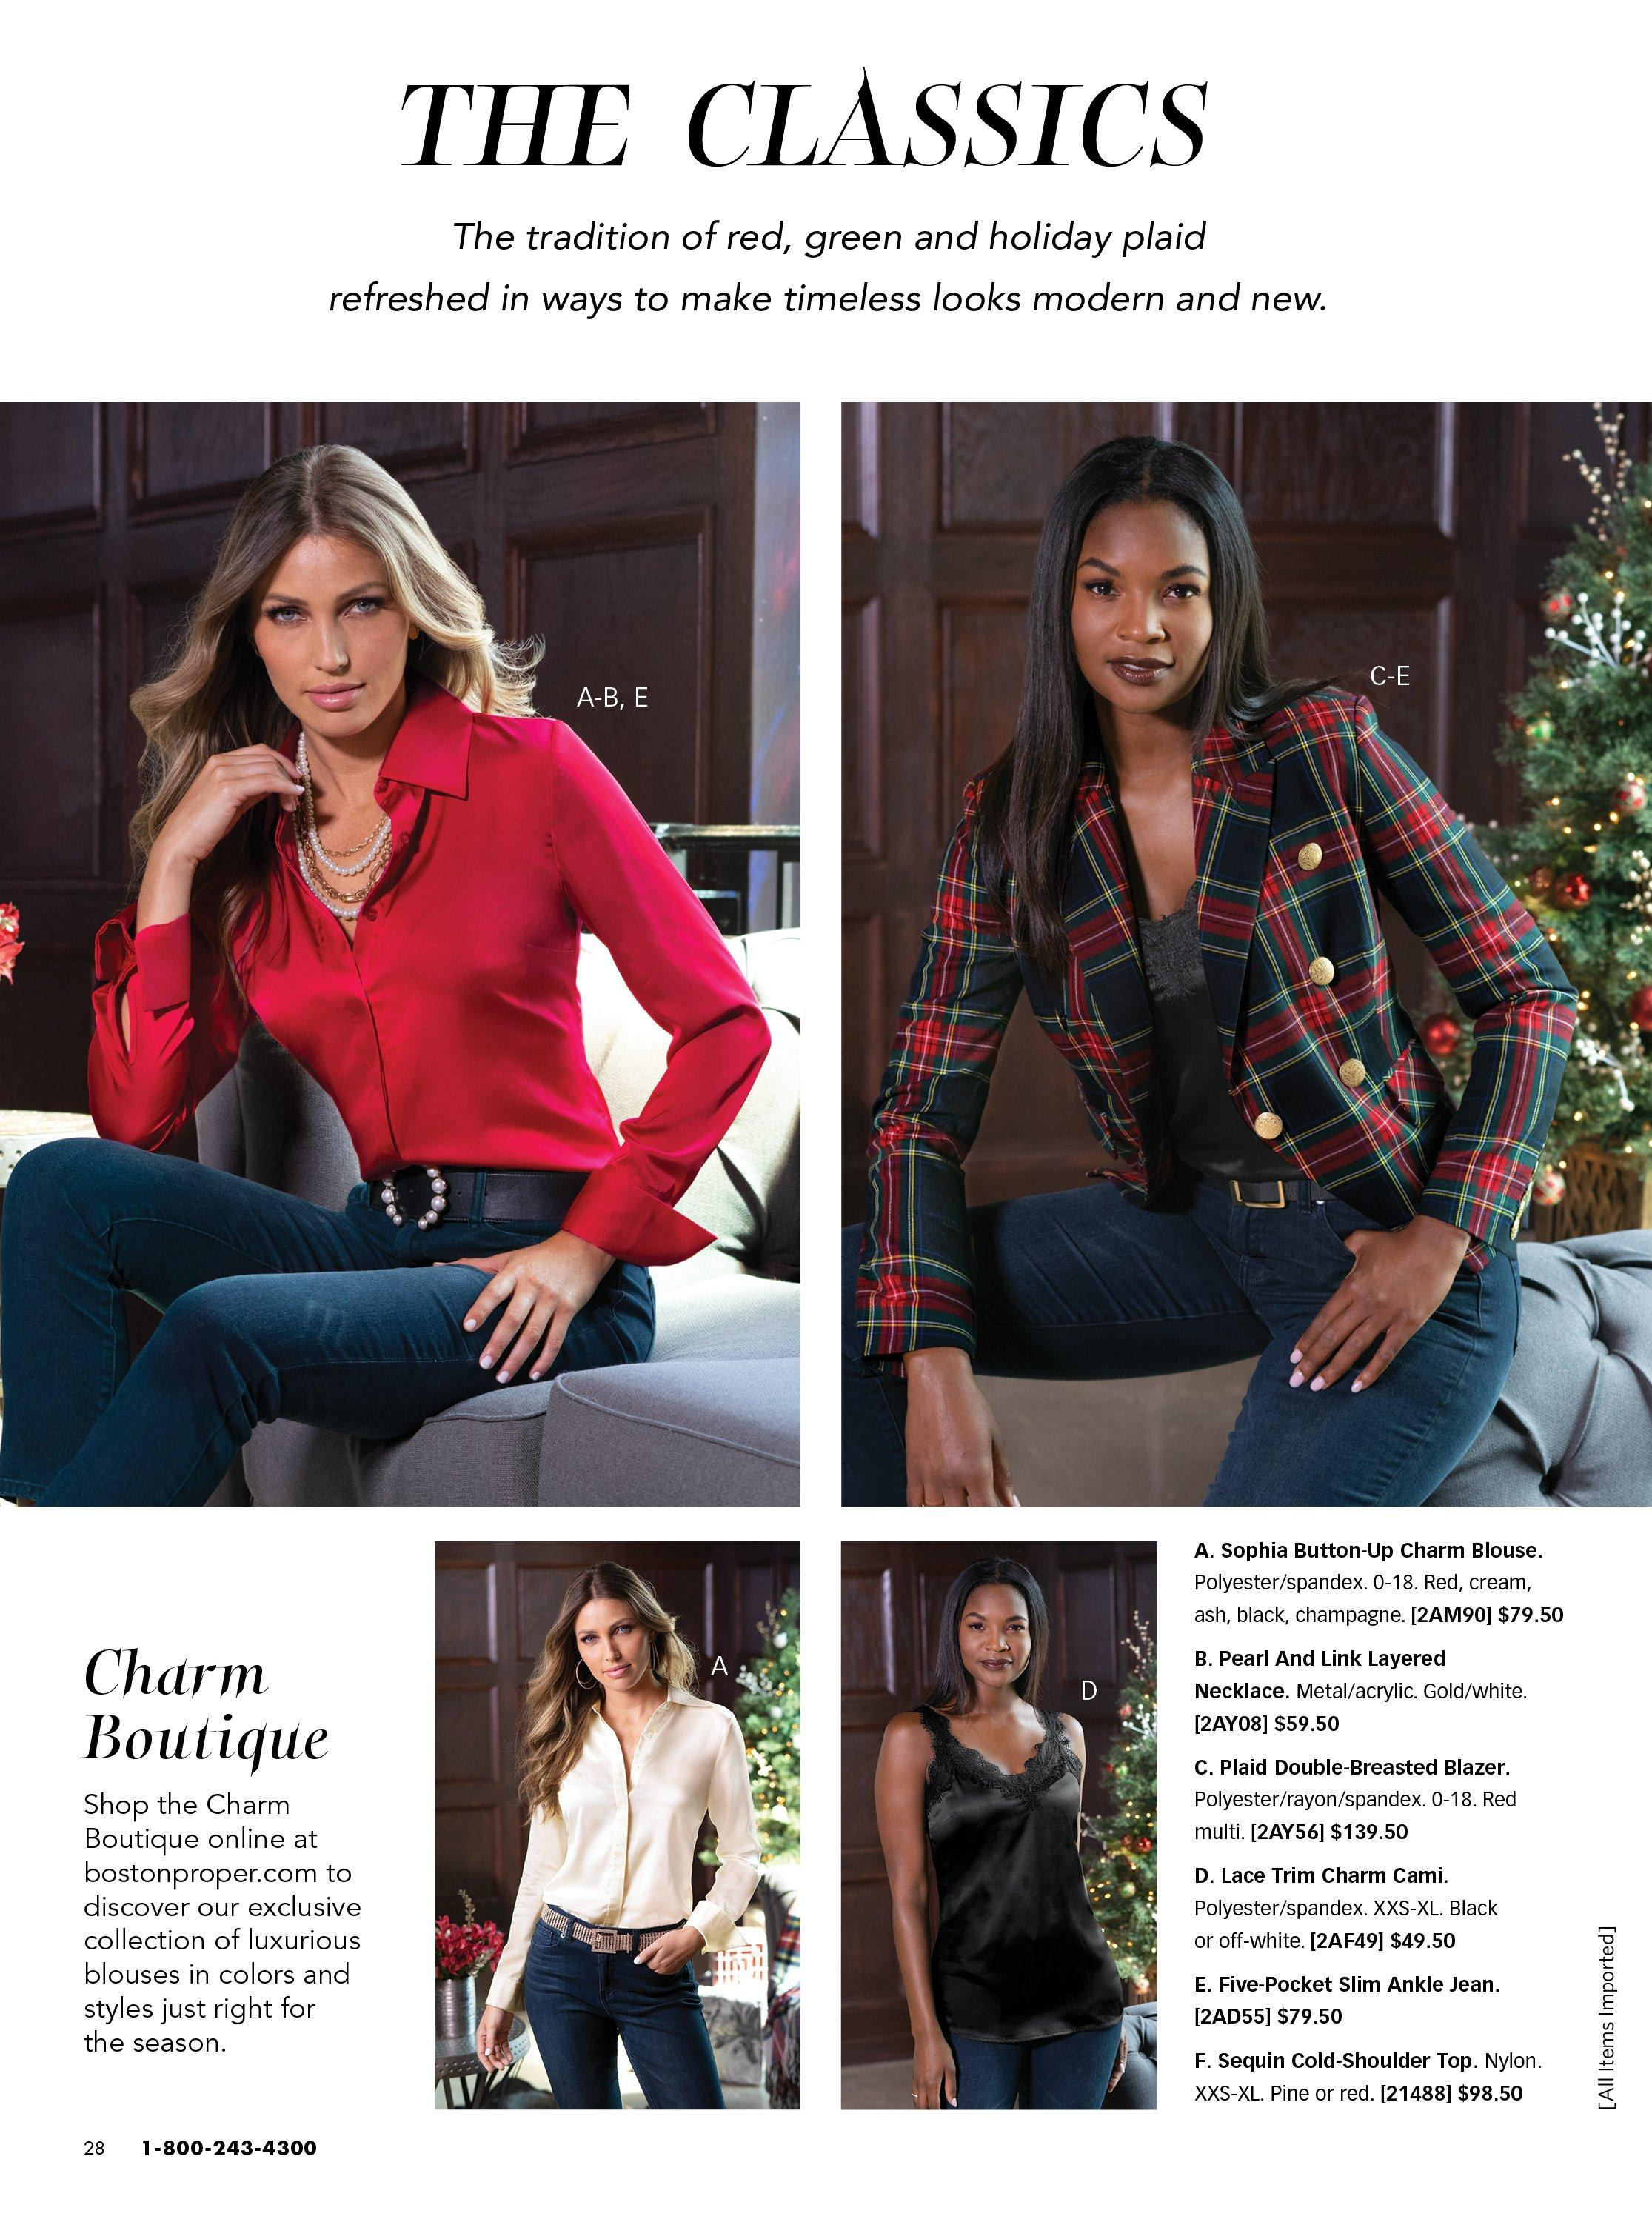 top left model wearing a red button-up blouse, black pearl embellished belt, pearl and gold chain layered necklace, and jeans. top right model wearing a red and green plaid blazer, black lace tank top, and jeans. bottom left model wearing a white button down blouse, rhinestone belt, and jeans. bottom right model wearing a black lace tank top and jeans.